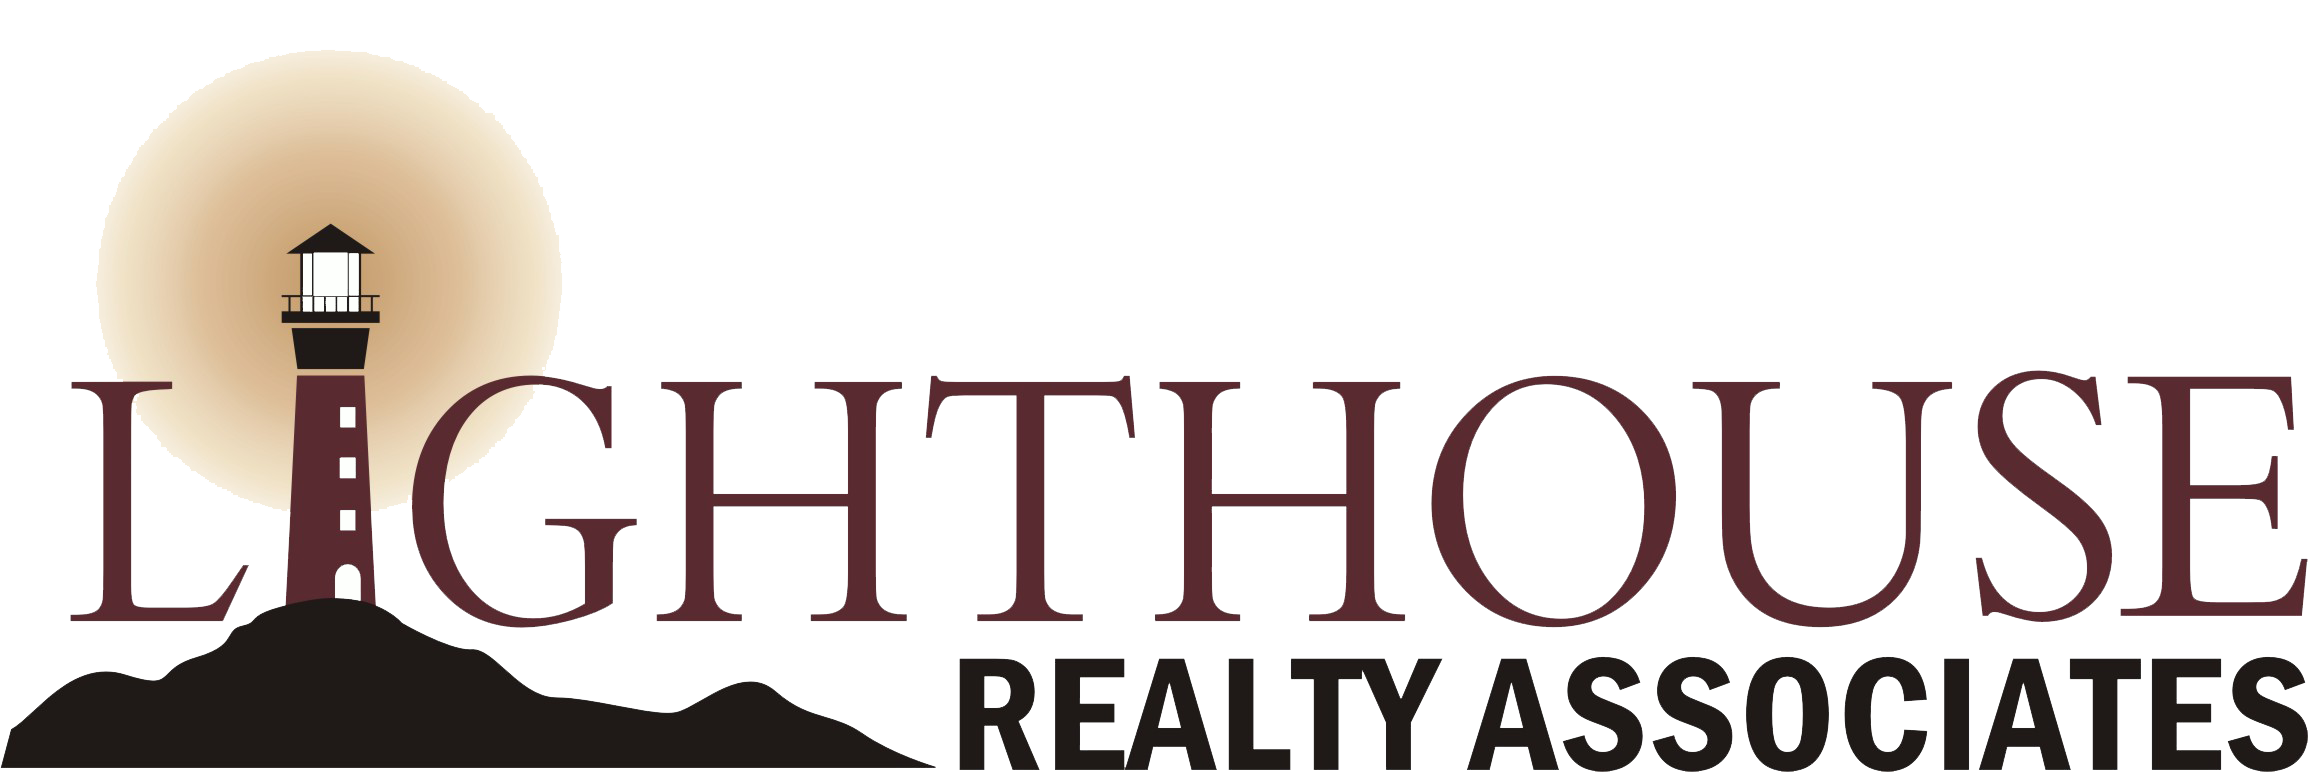 LighthouseRealtyAssoc_bleed through logo